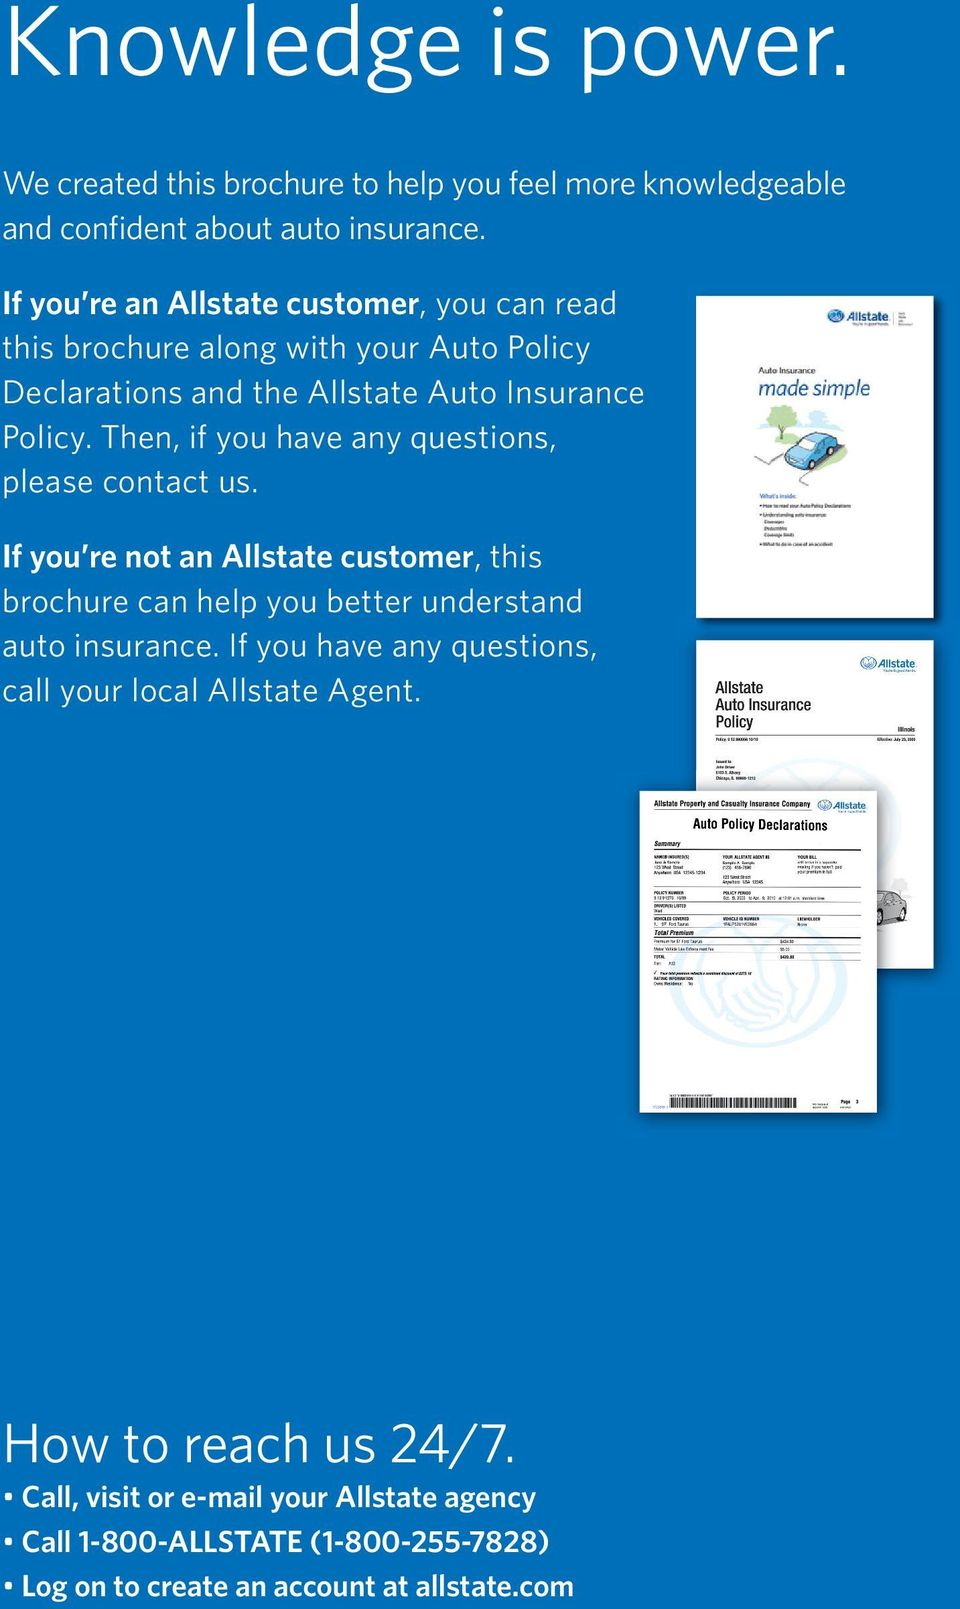 Then, if you have any questions, please contact us. If you re not an Allstate customer, this brochure can help you better understand auto insurance.